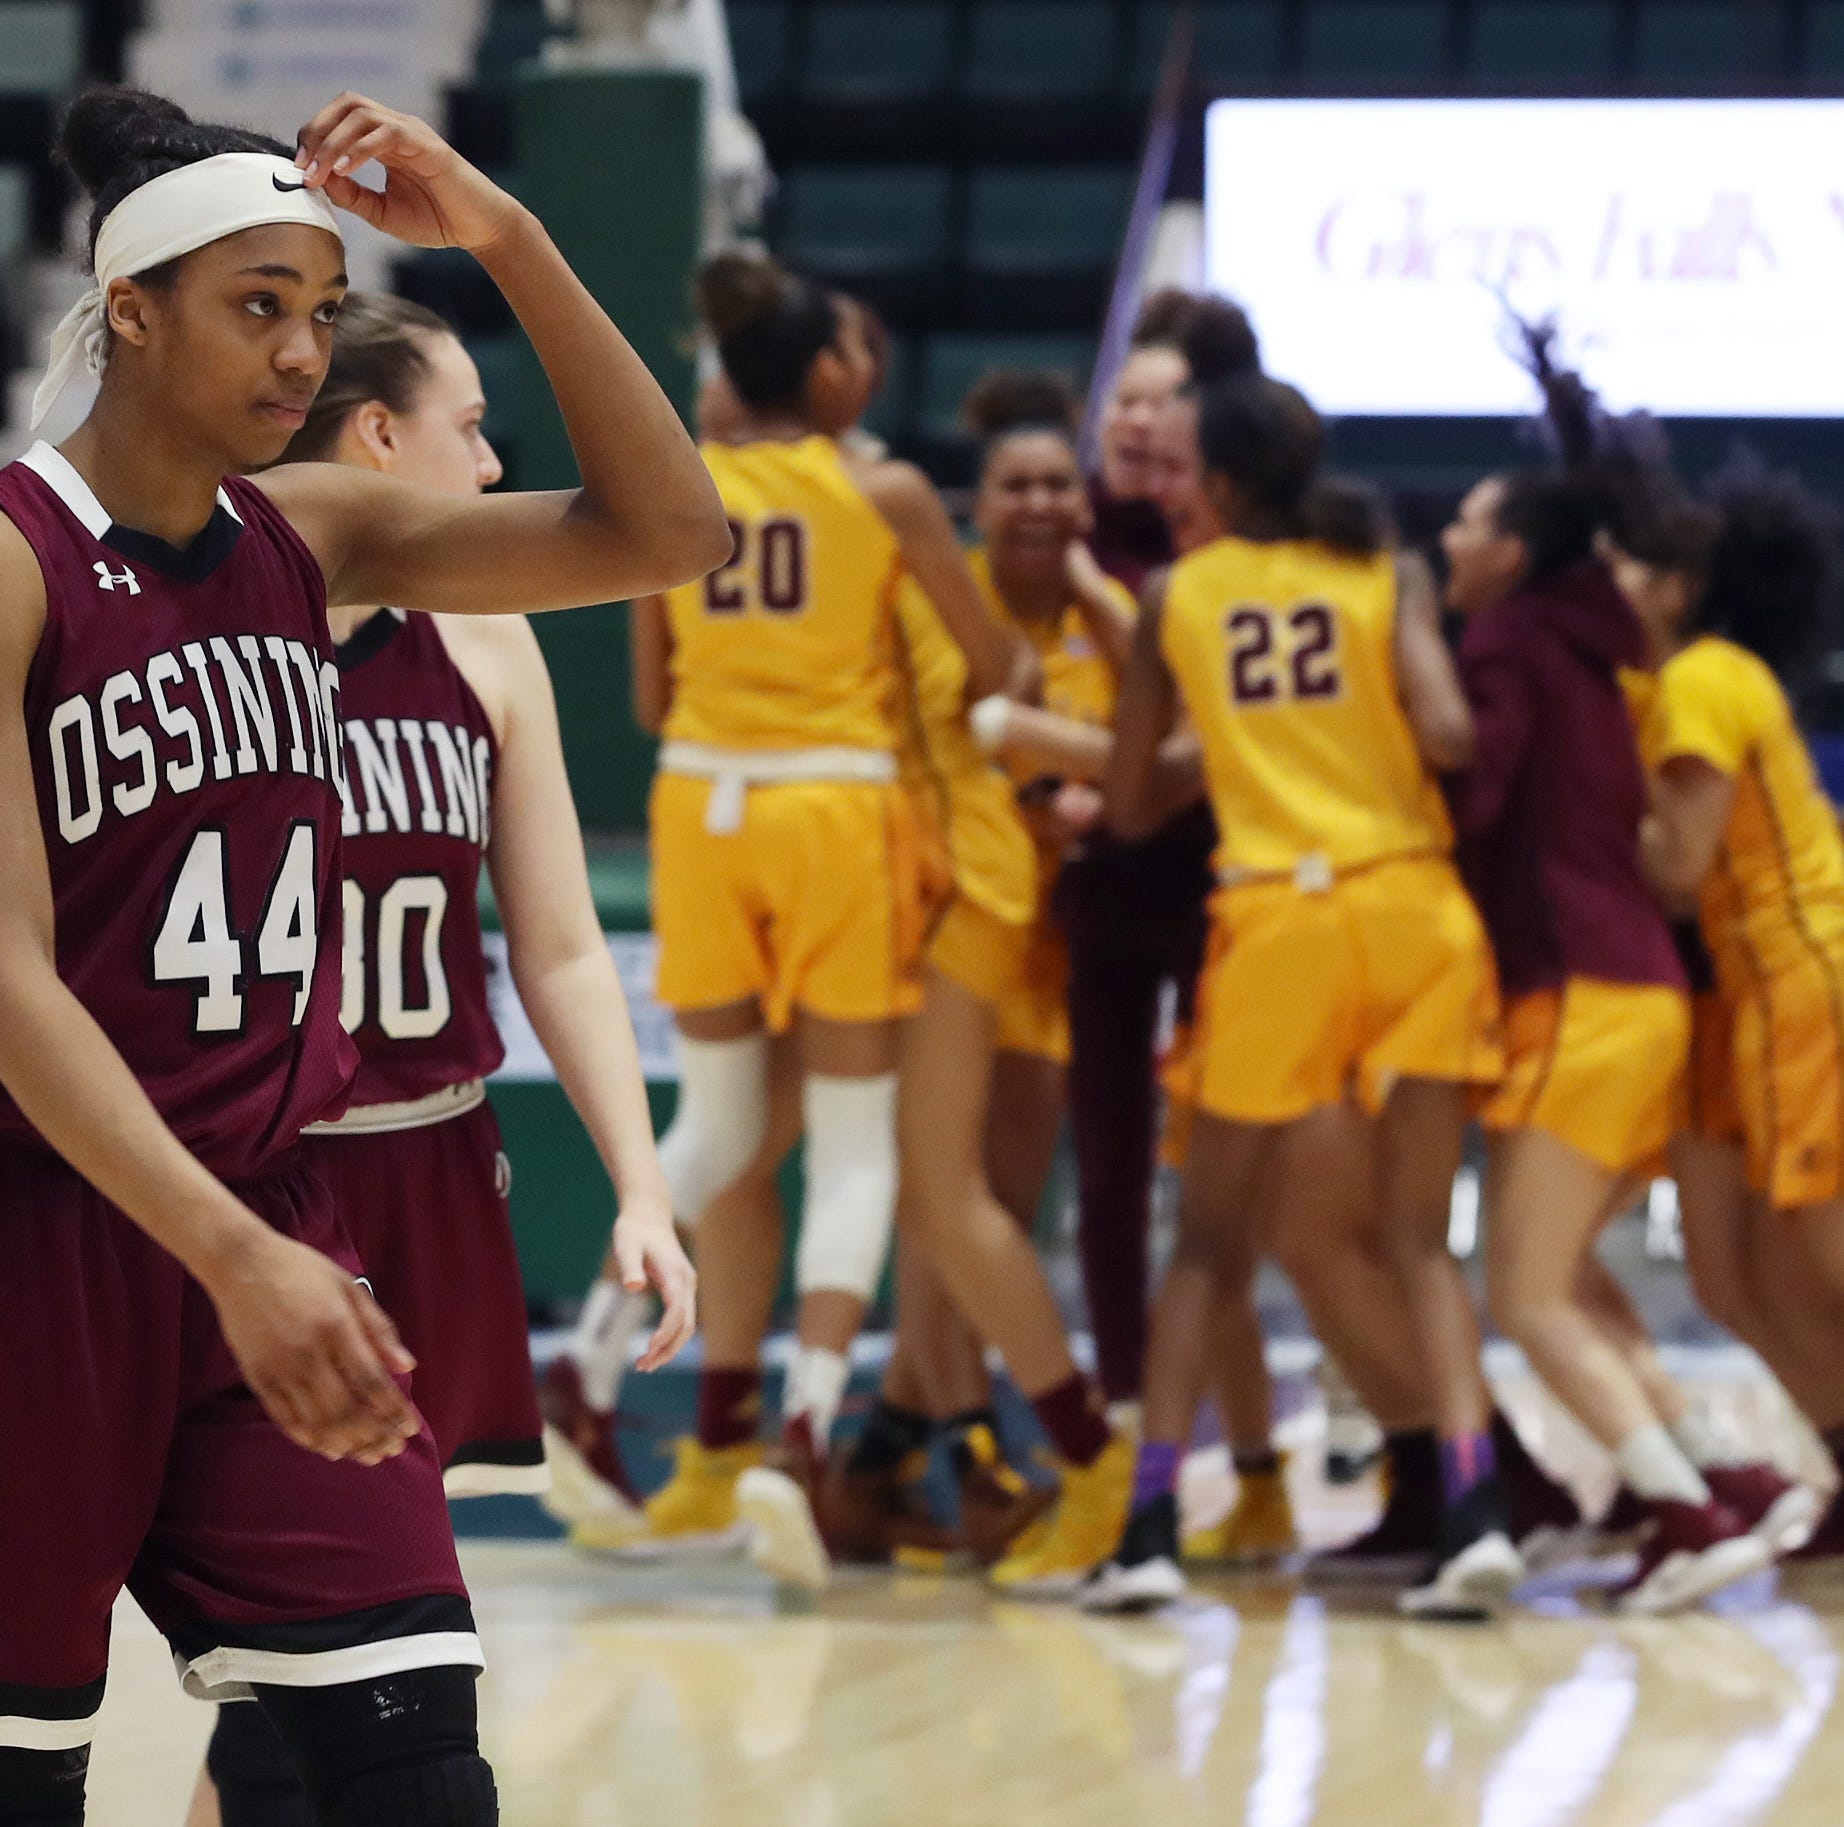 Girls basketball: Ossining comes up short in Federation final to nationally ranked CTK